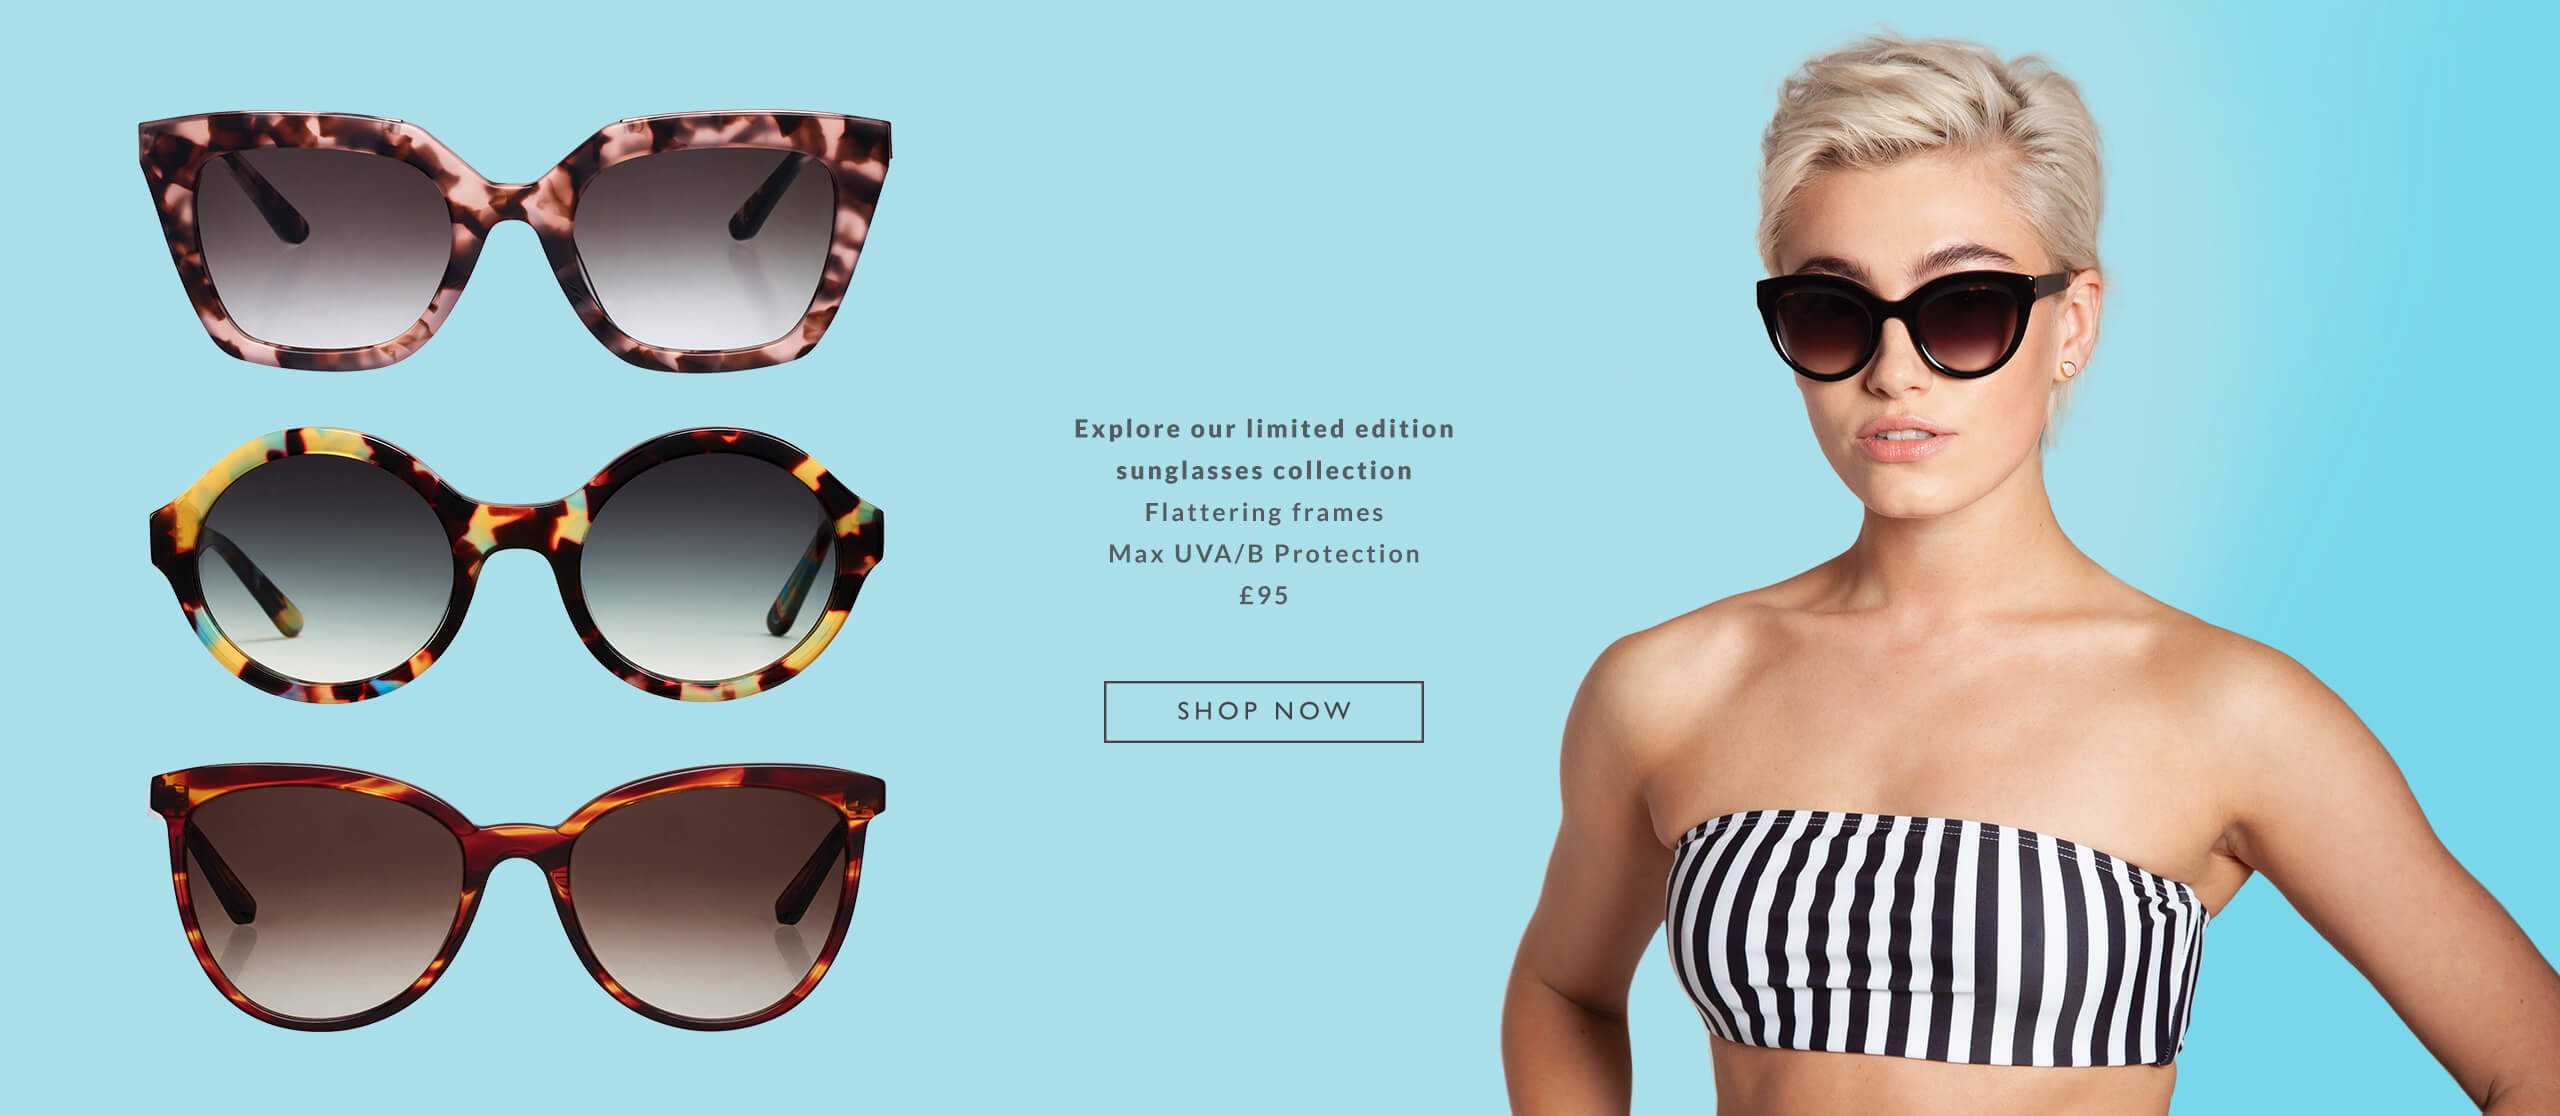 Explore the OSPREY LONDON Sunglasses Collection